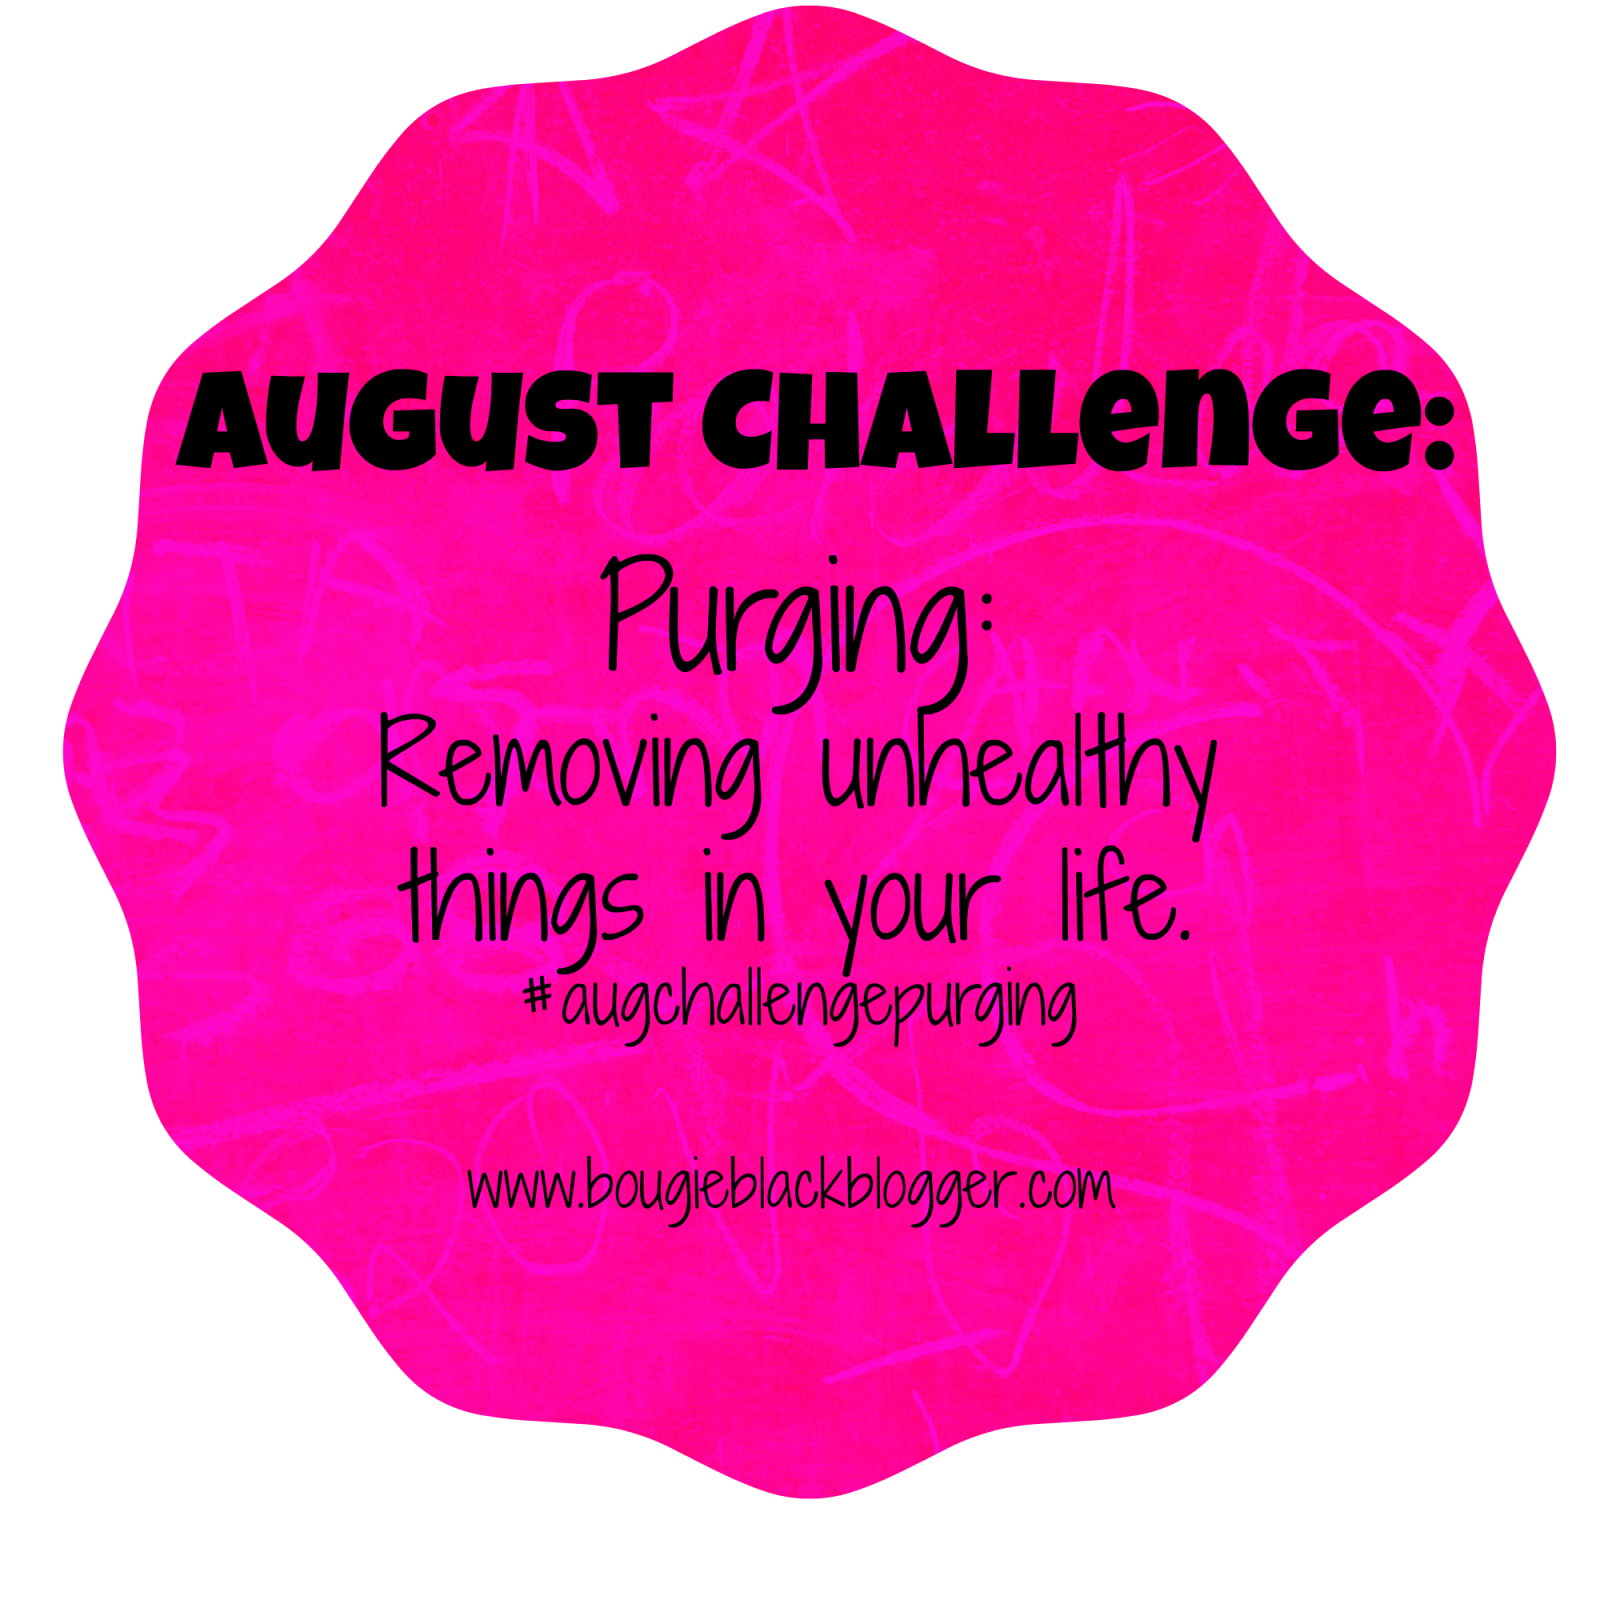 August Challenge: Purging